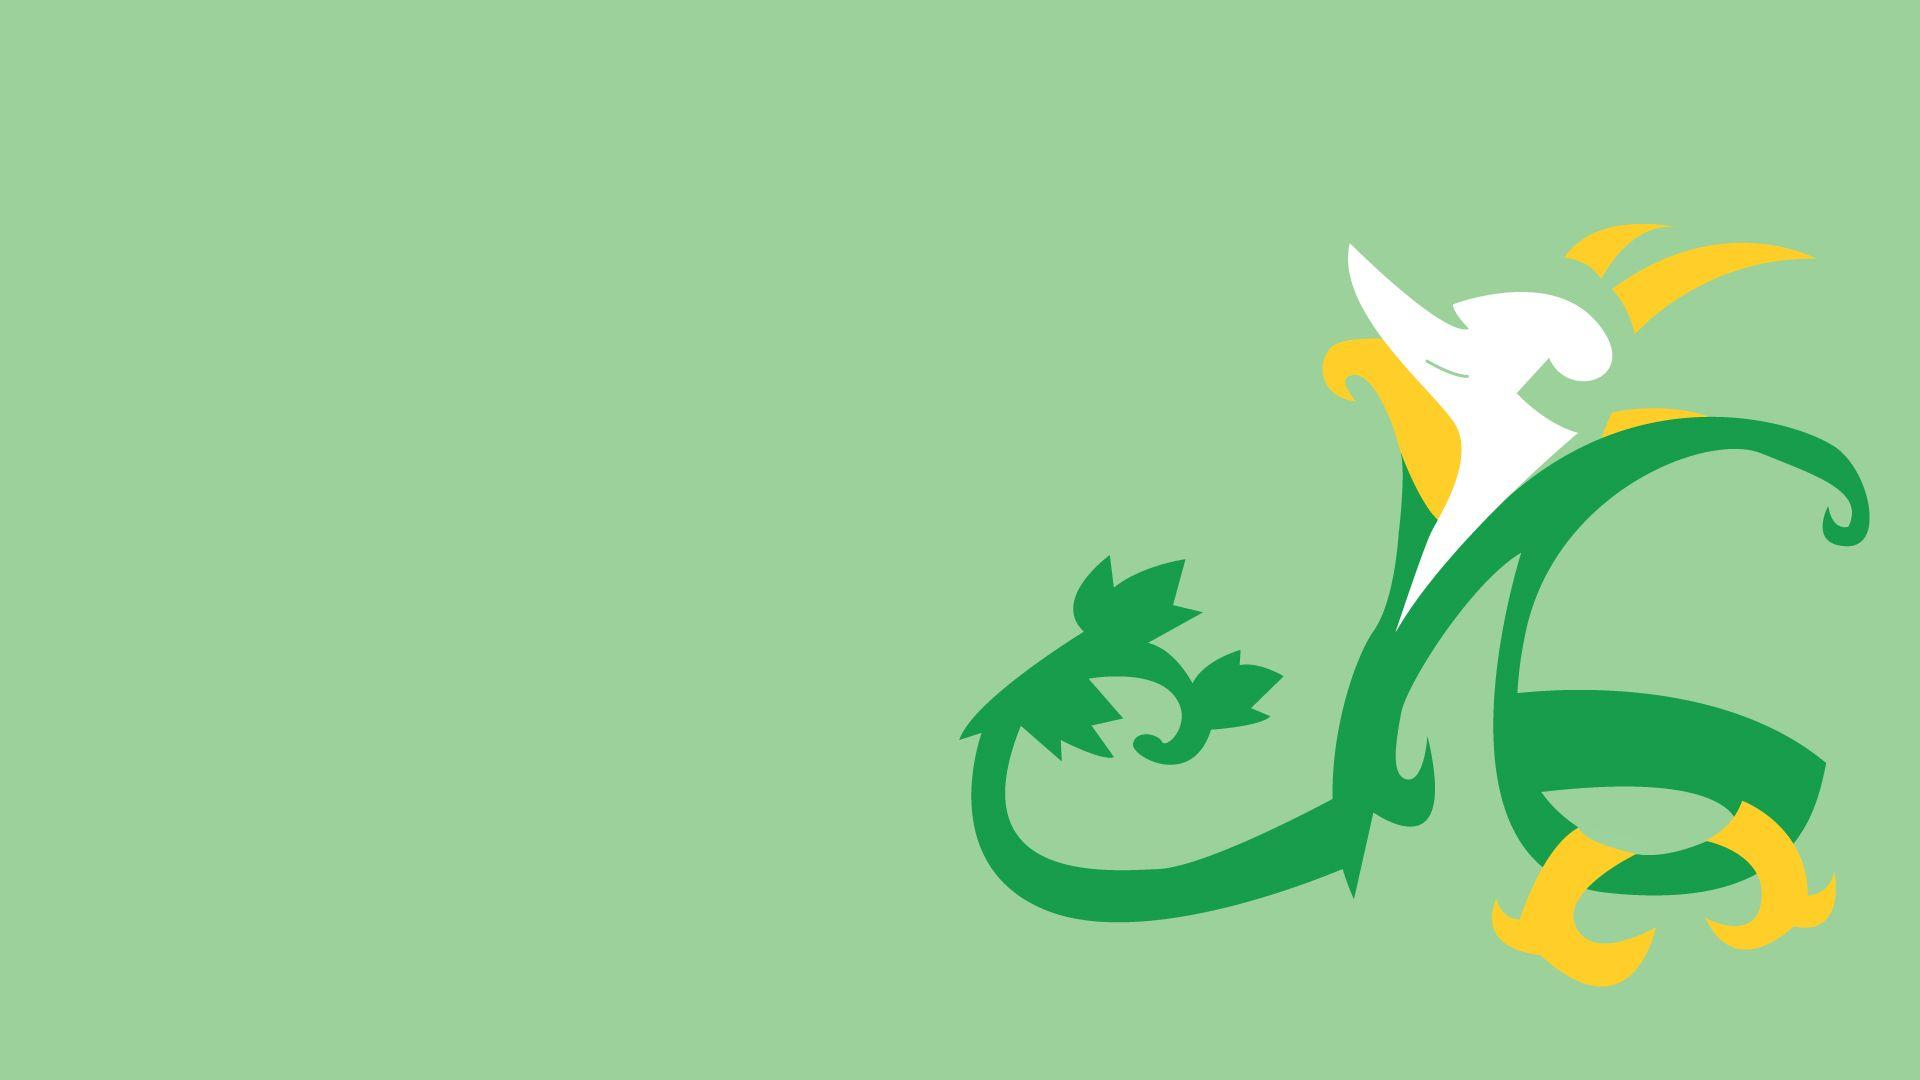 Serperior, Minimalism, Green Backgrounds wallpapers